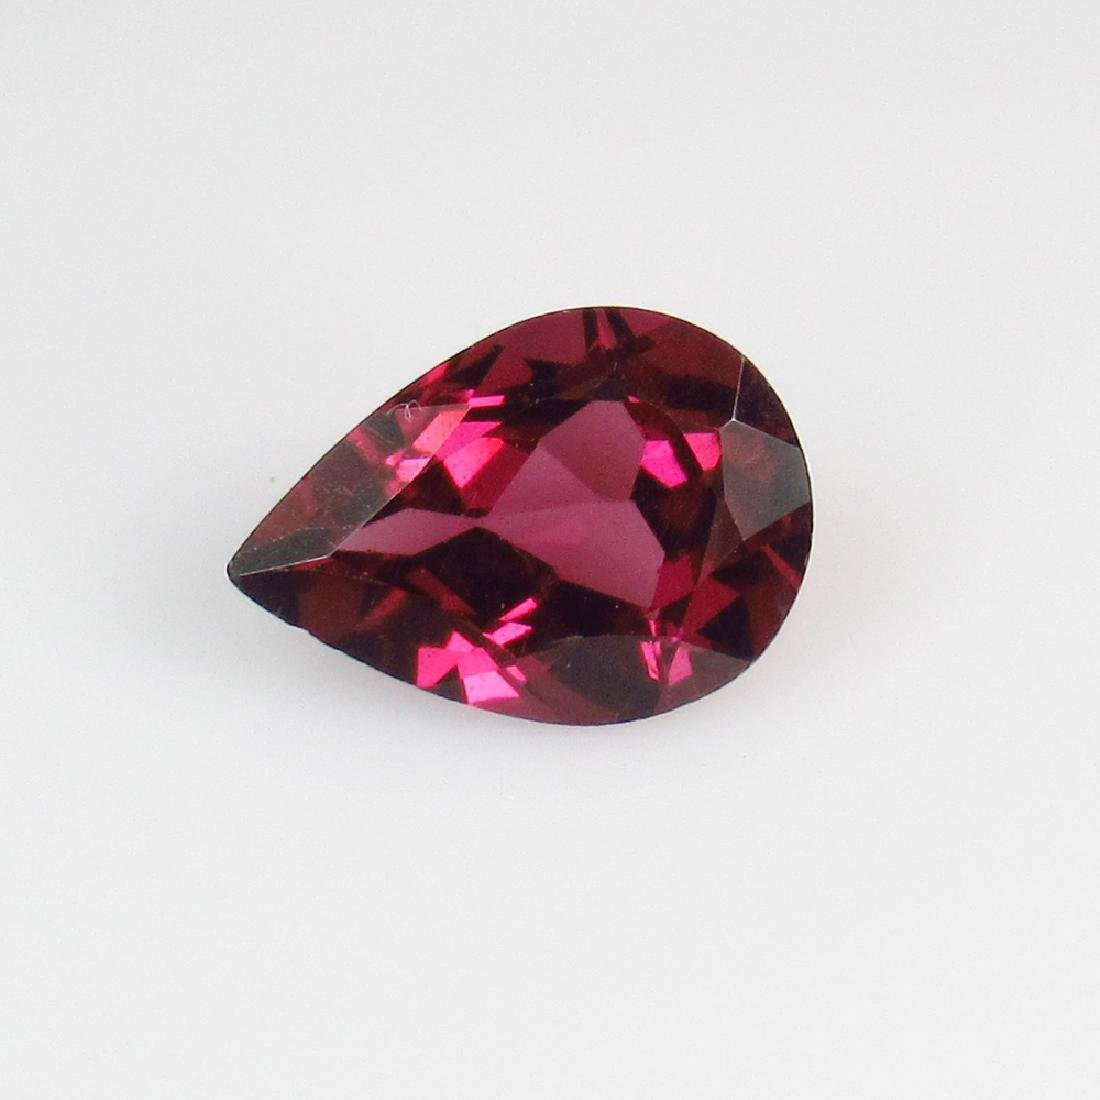 2.20 Ct Genuine Pink Rhodolite Garnet 10X7 mm Pear Cut